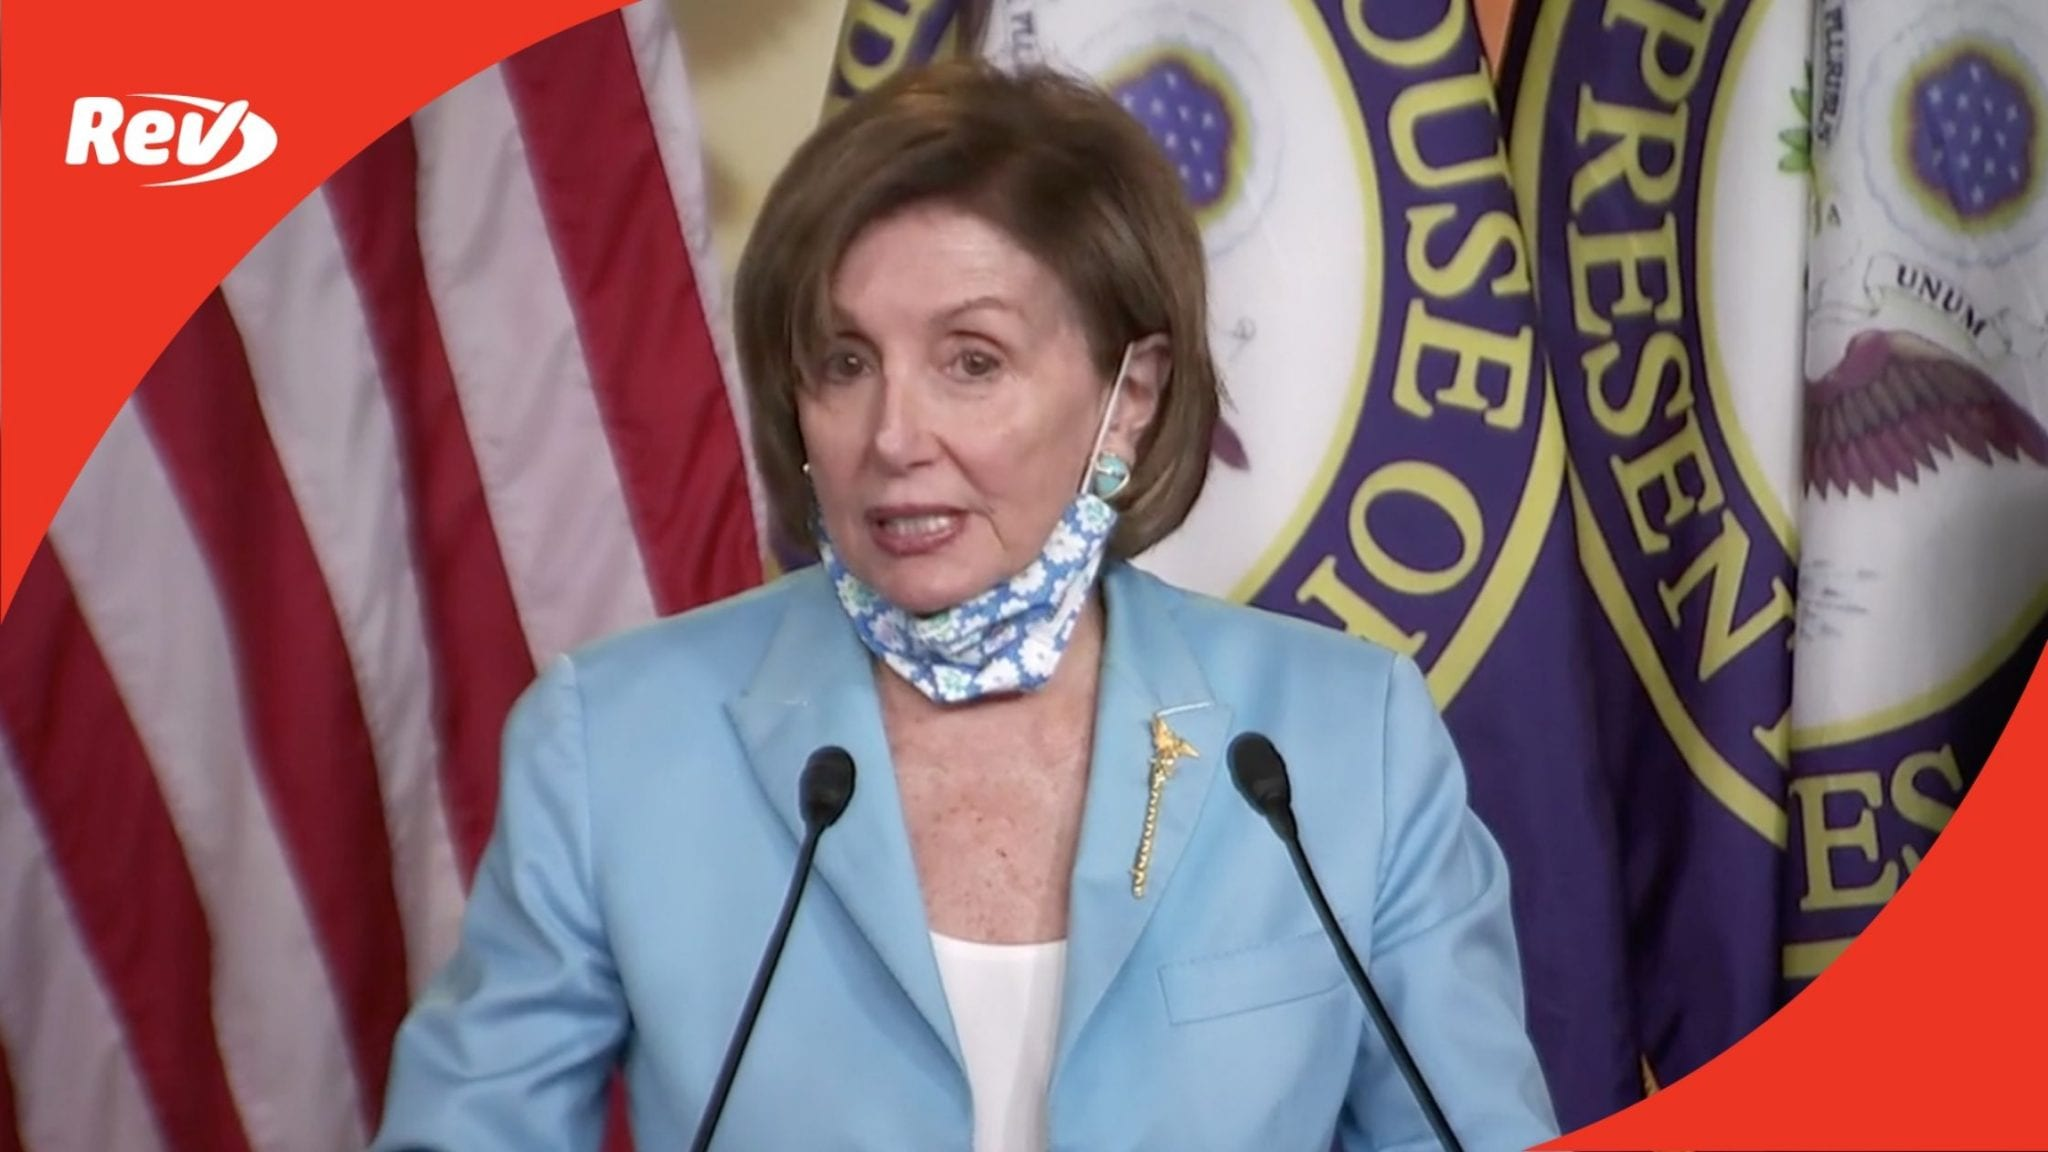 House Speaker Nancy Pelosi January 6 Commission Press Conference Transcript May 19